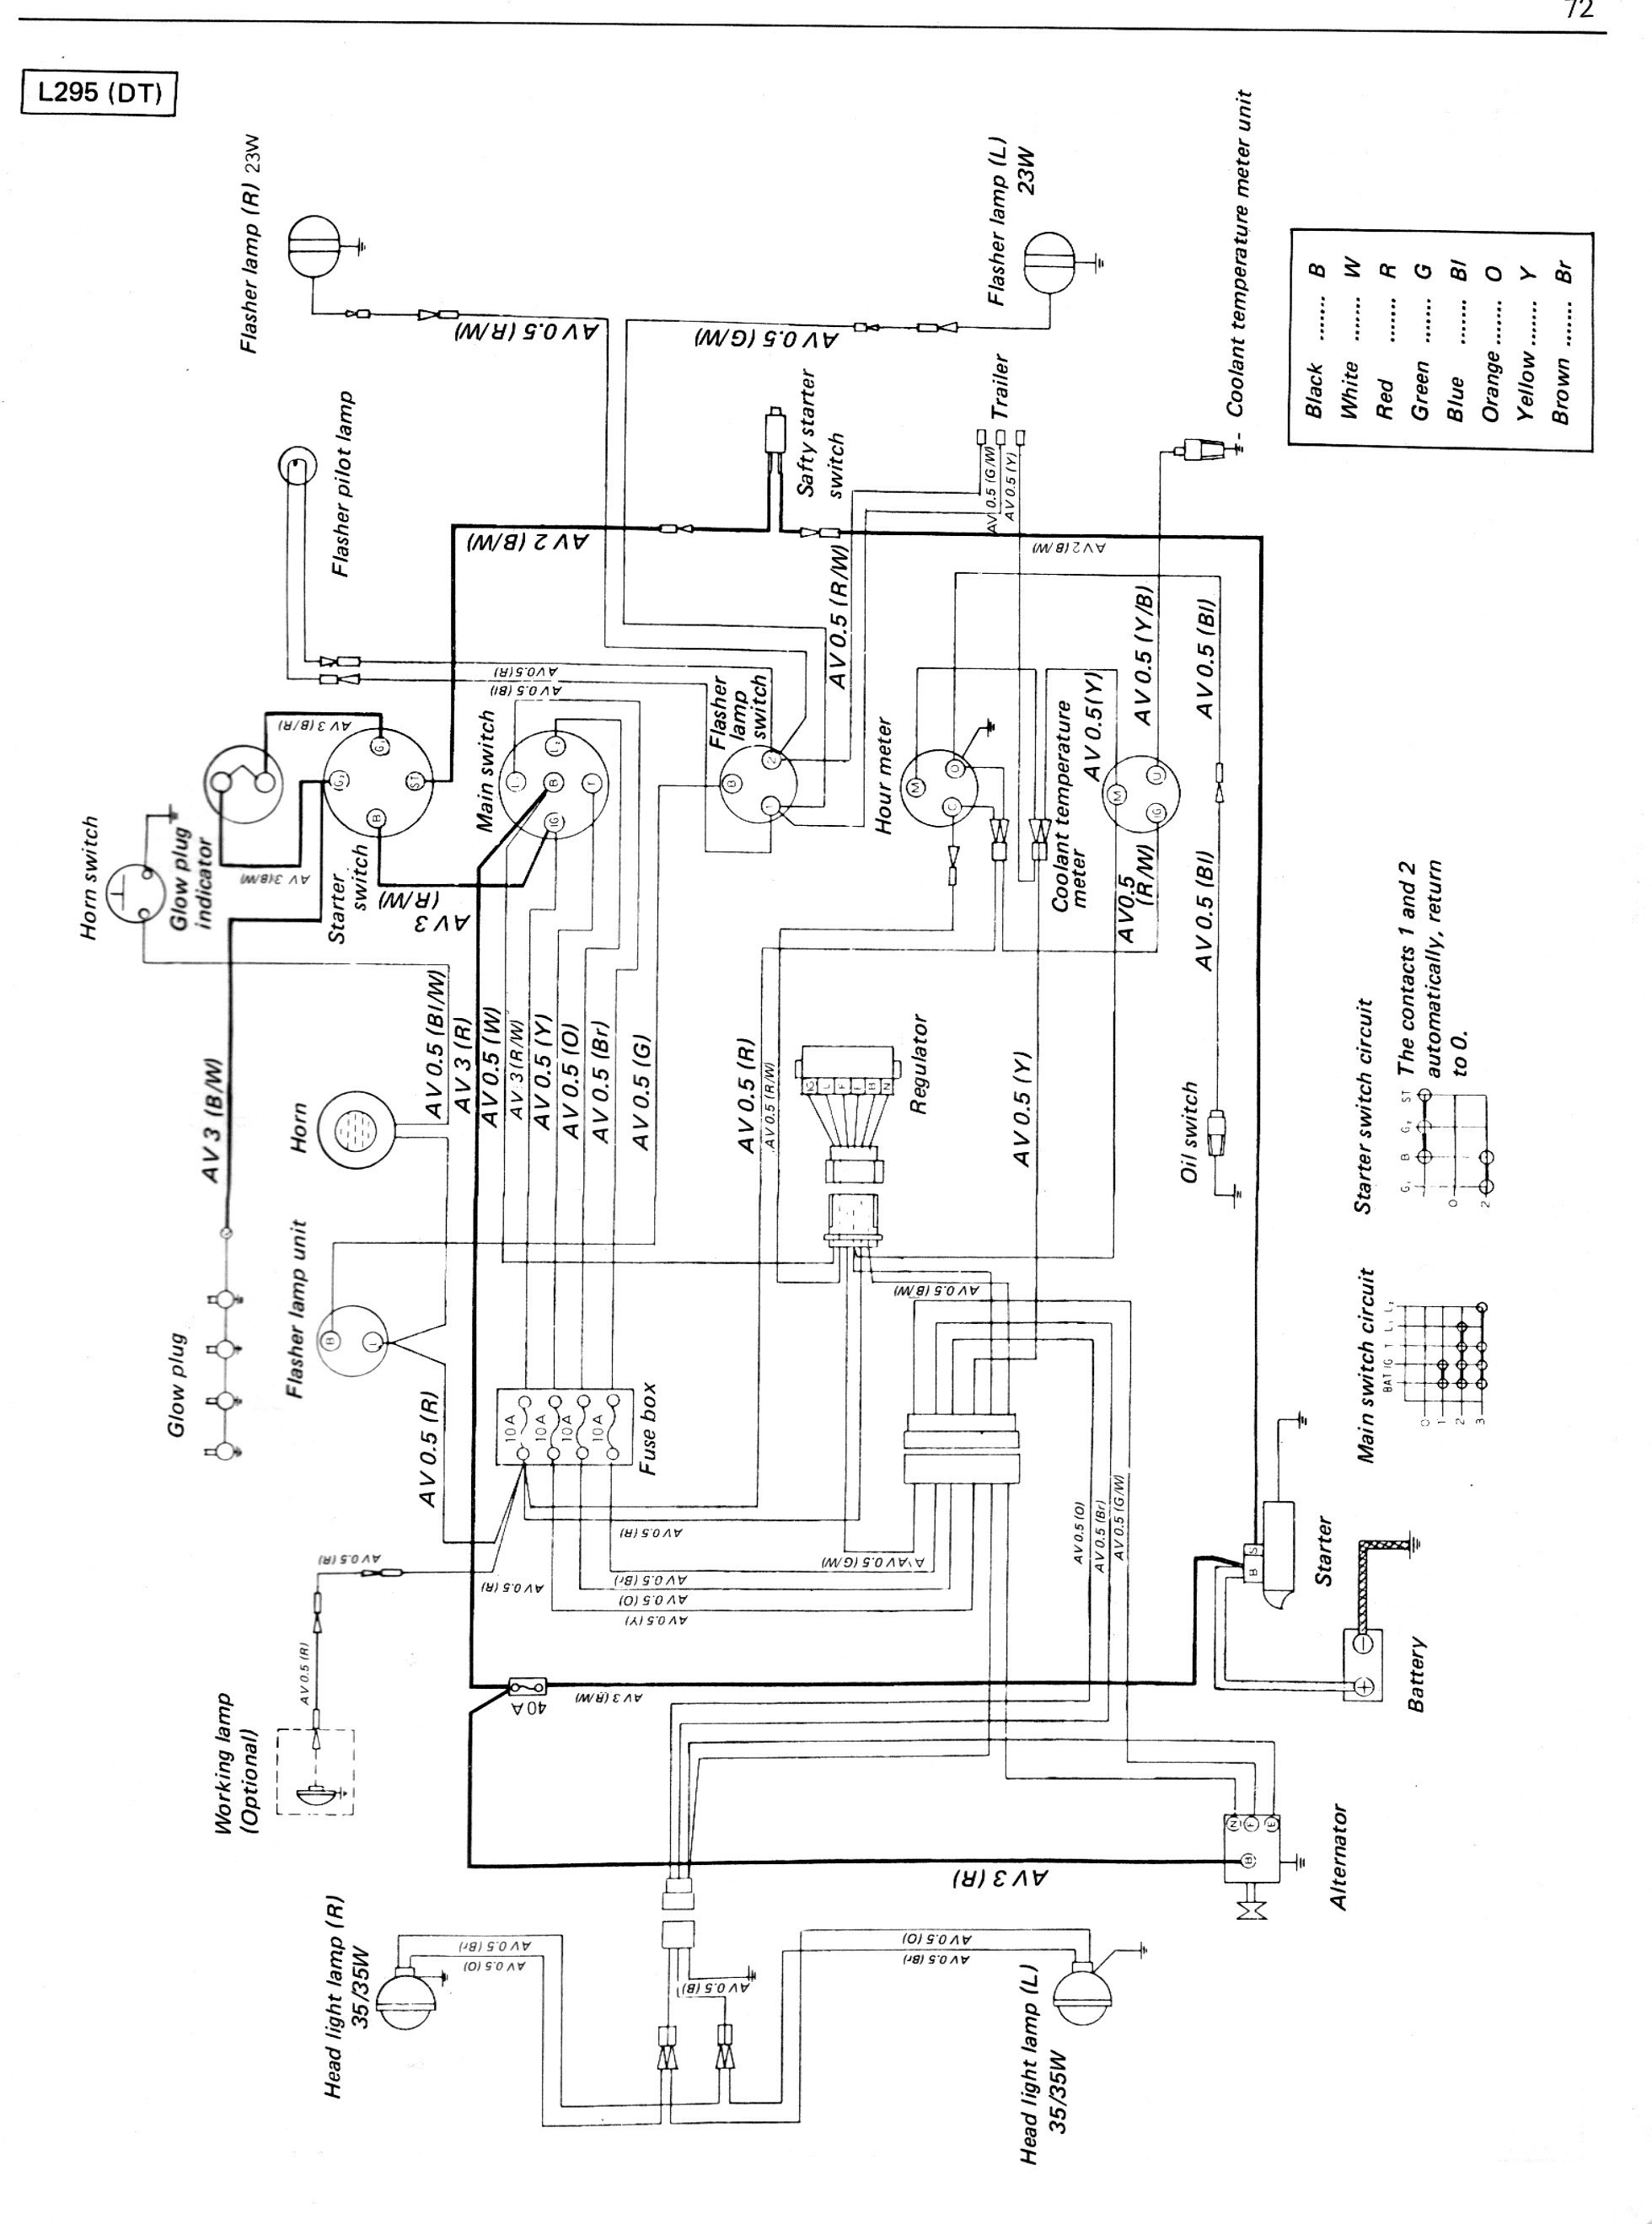 File Kubotum Fuel Shut Off Solenoid Wiring Diagram